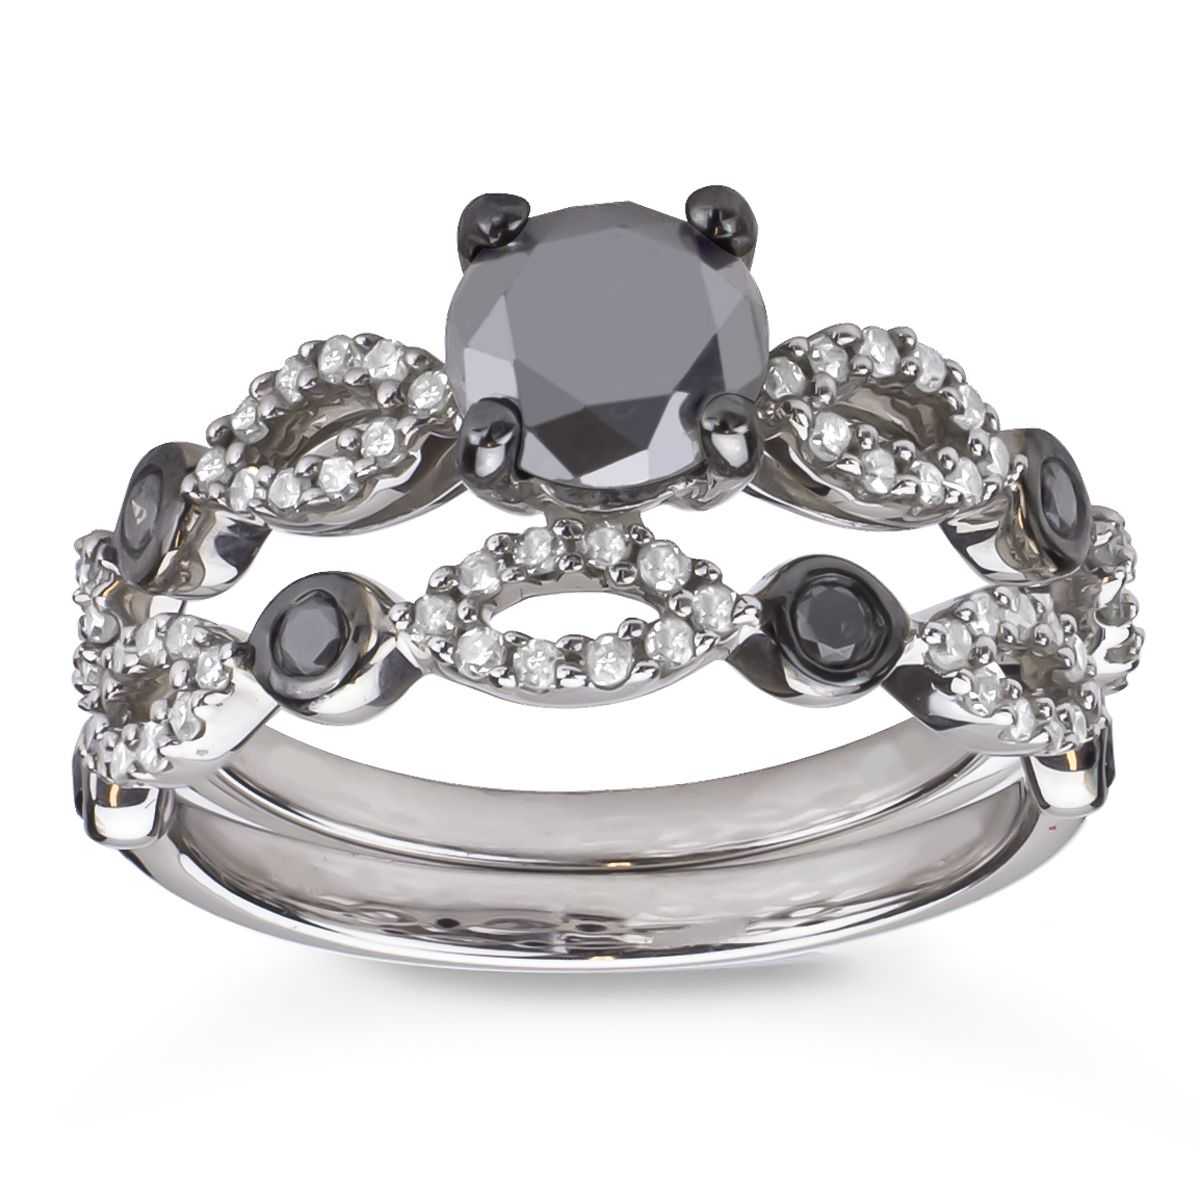 Black diamond ring Mobile Black wedding ring